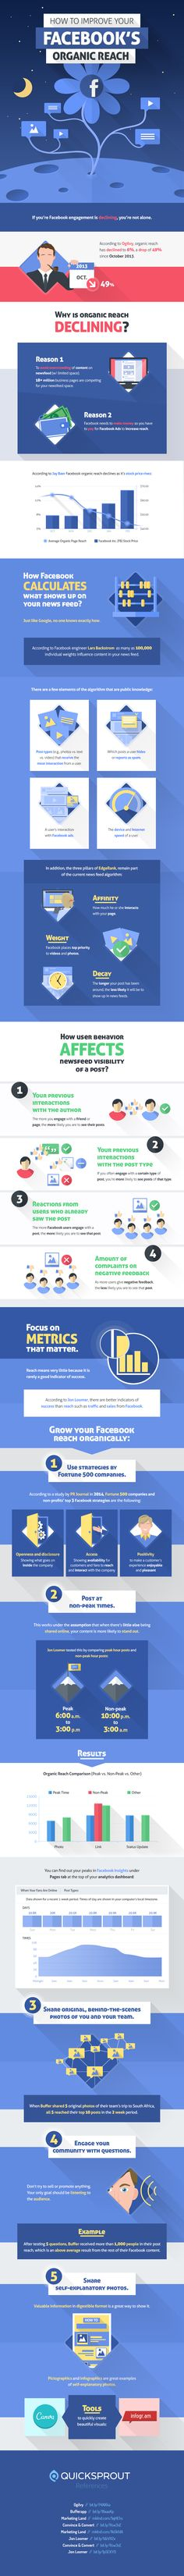 7 Strategies to Increase Facebook Organic Reach [INFOGRAPHIC]